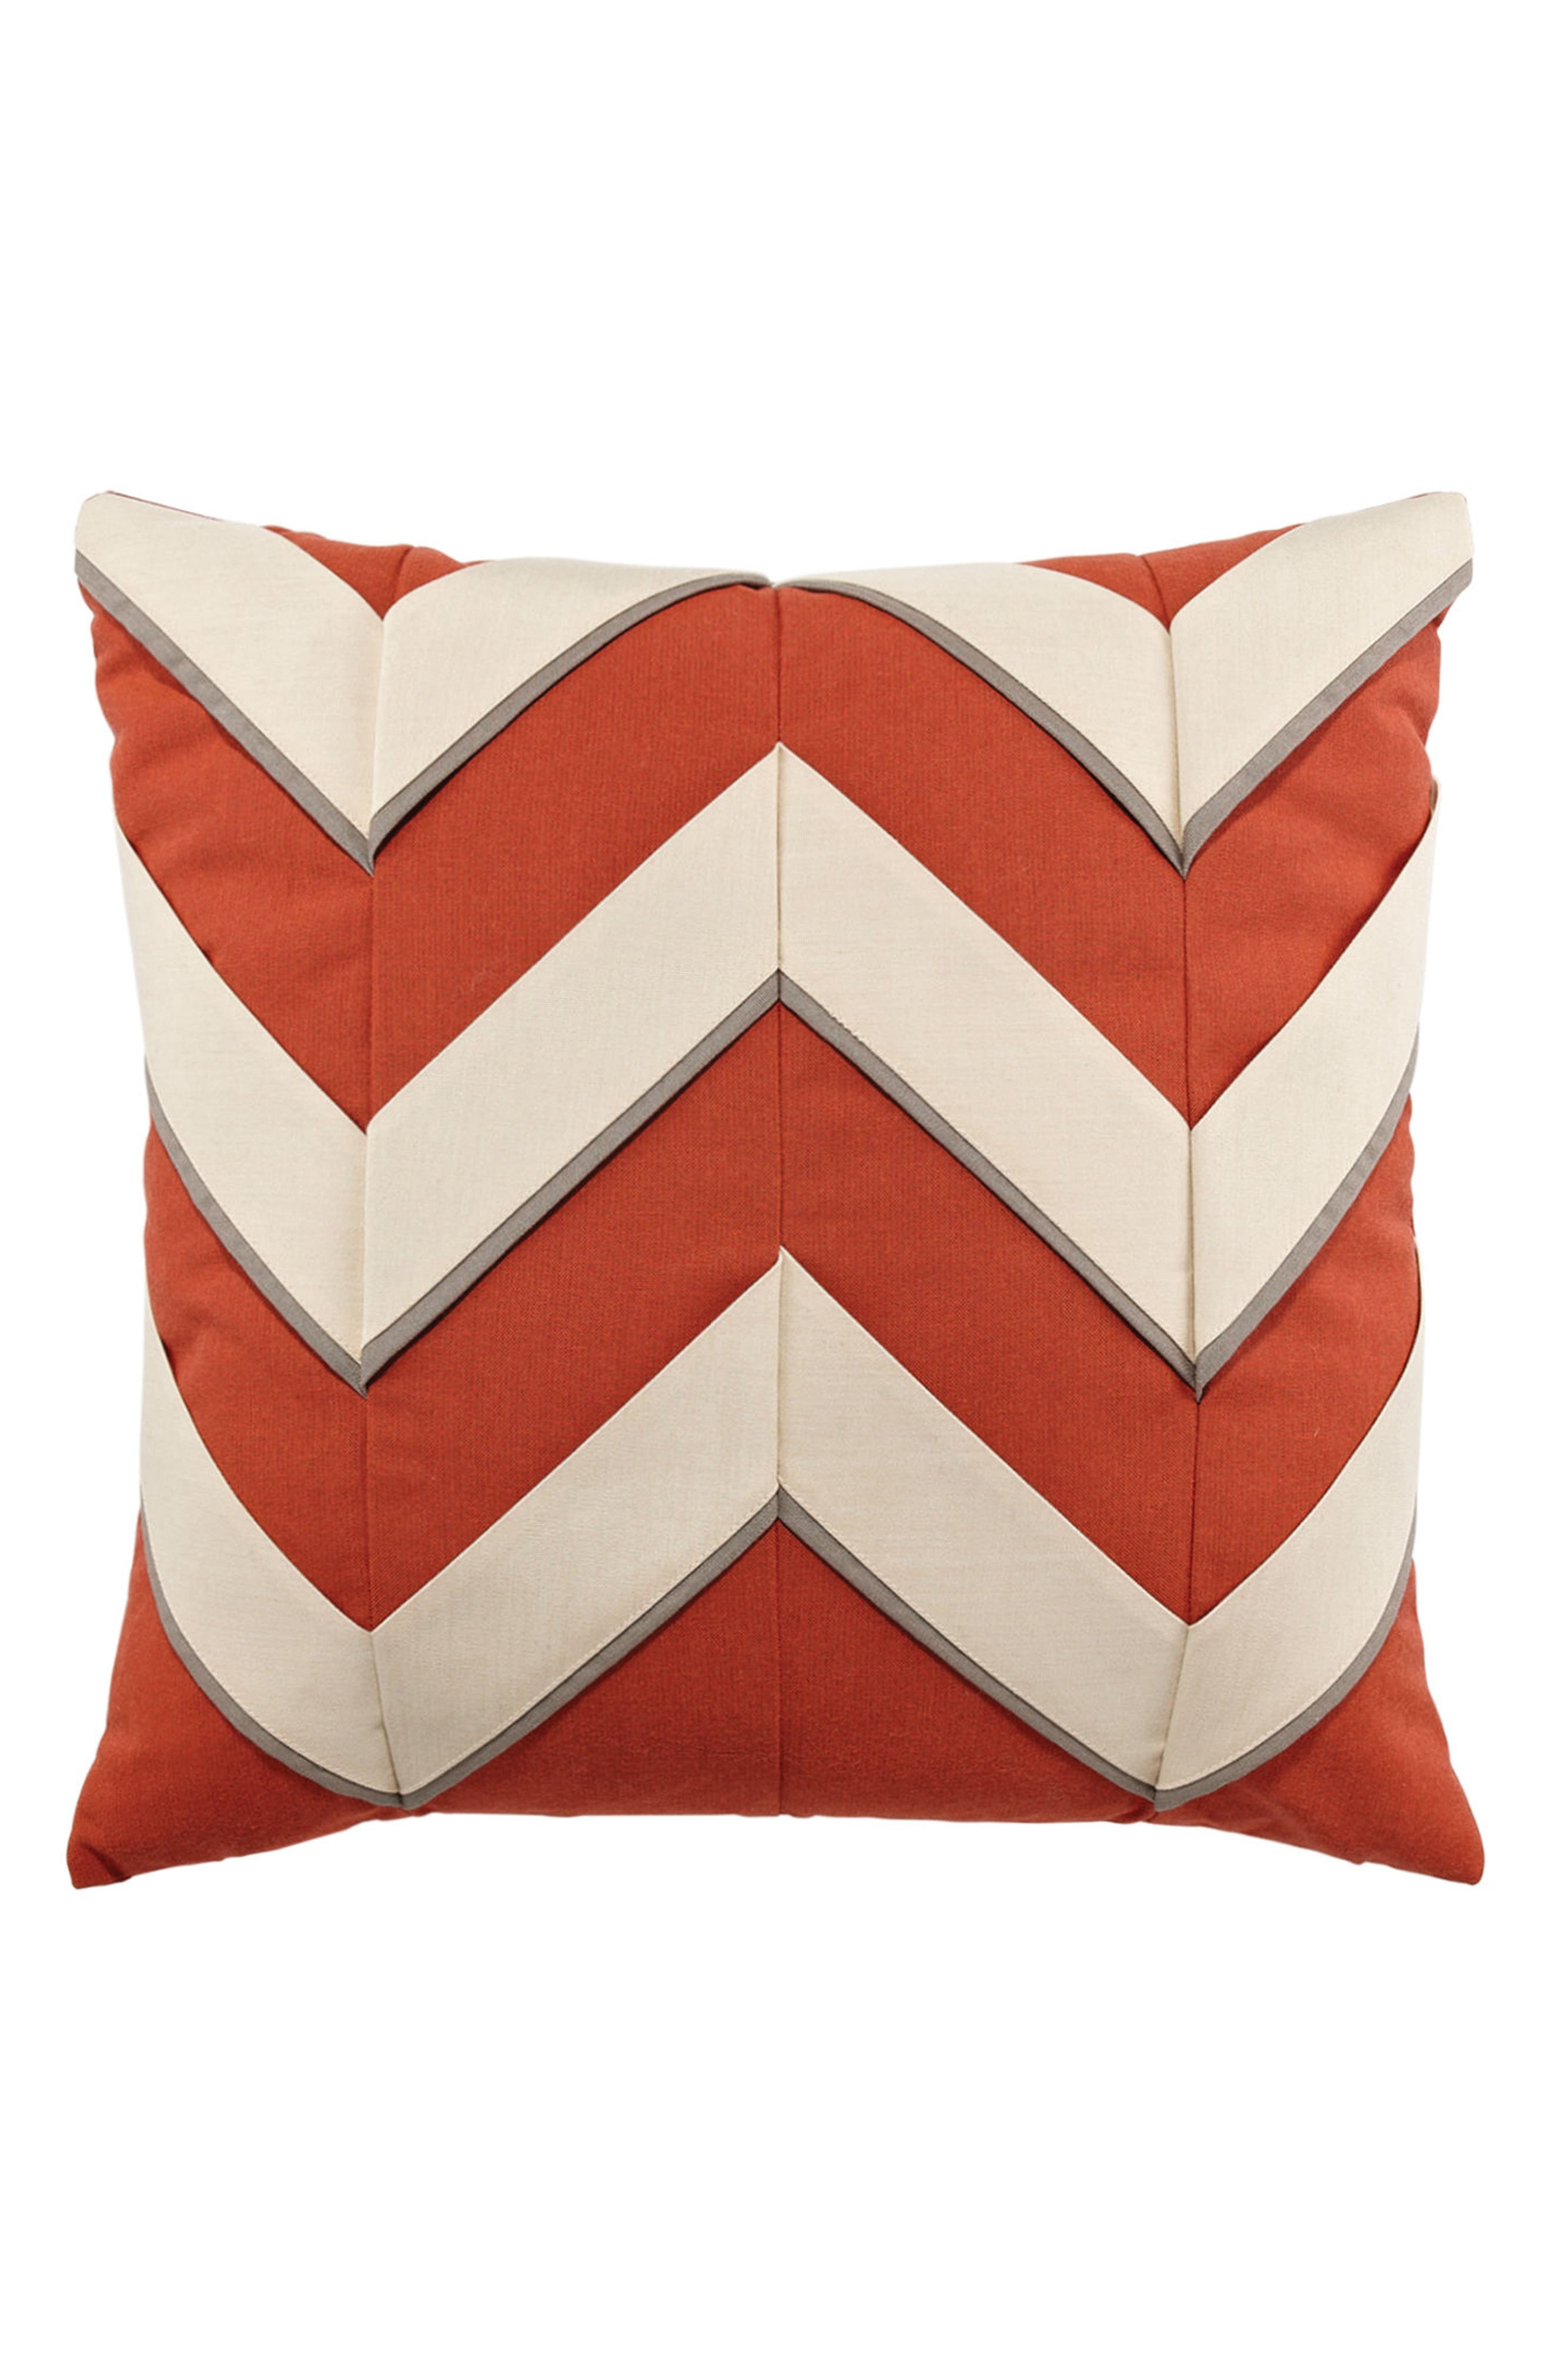 ELAINE SMITH Coral Cruise Indoor/Outdoor Accent Pillow, Main, color, 800